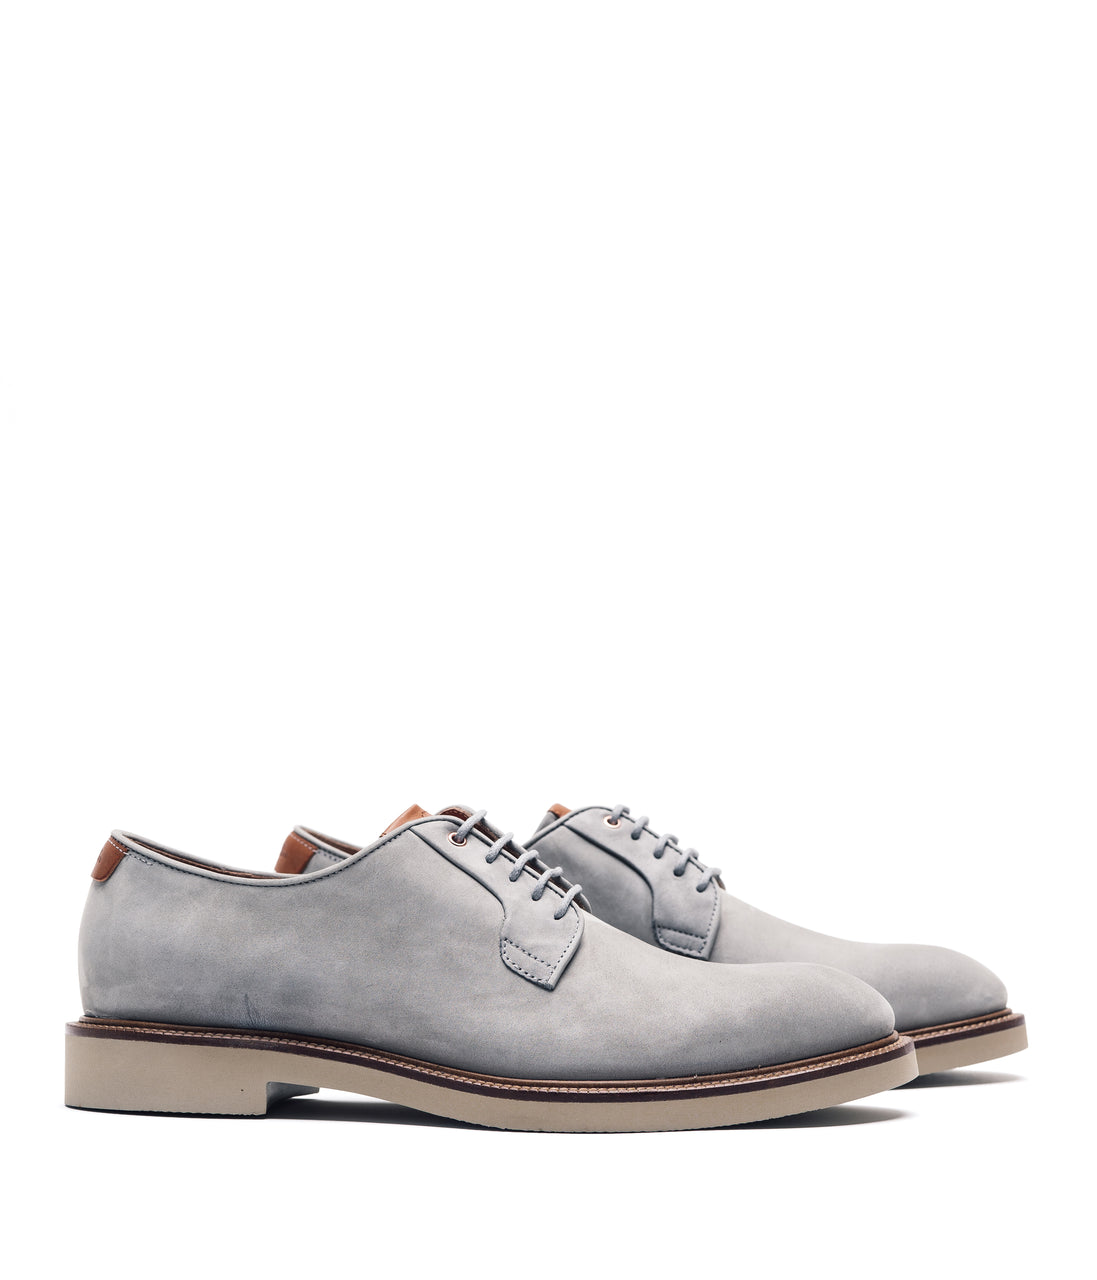 WW Classic Derby Shoe - Grey/Vachetta - Good Man Brand - WW Classic Derby Shoe - Grey/Vachetta